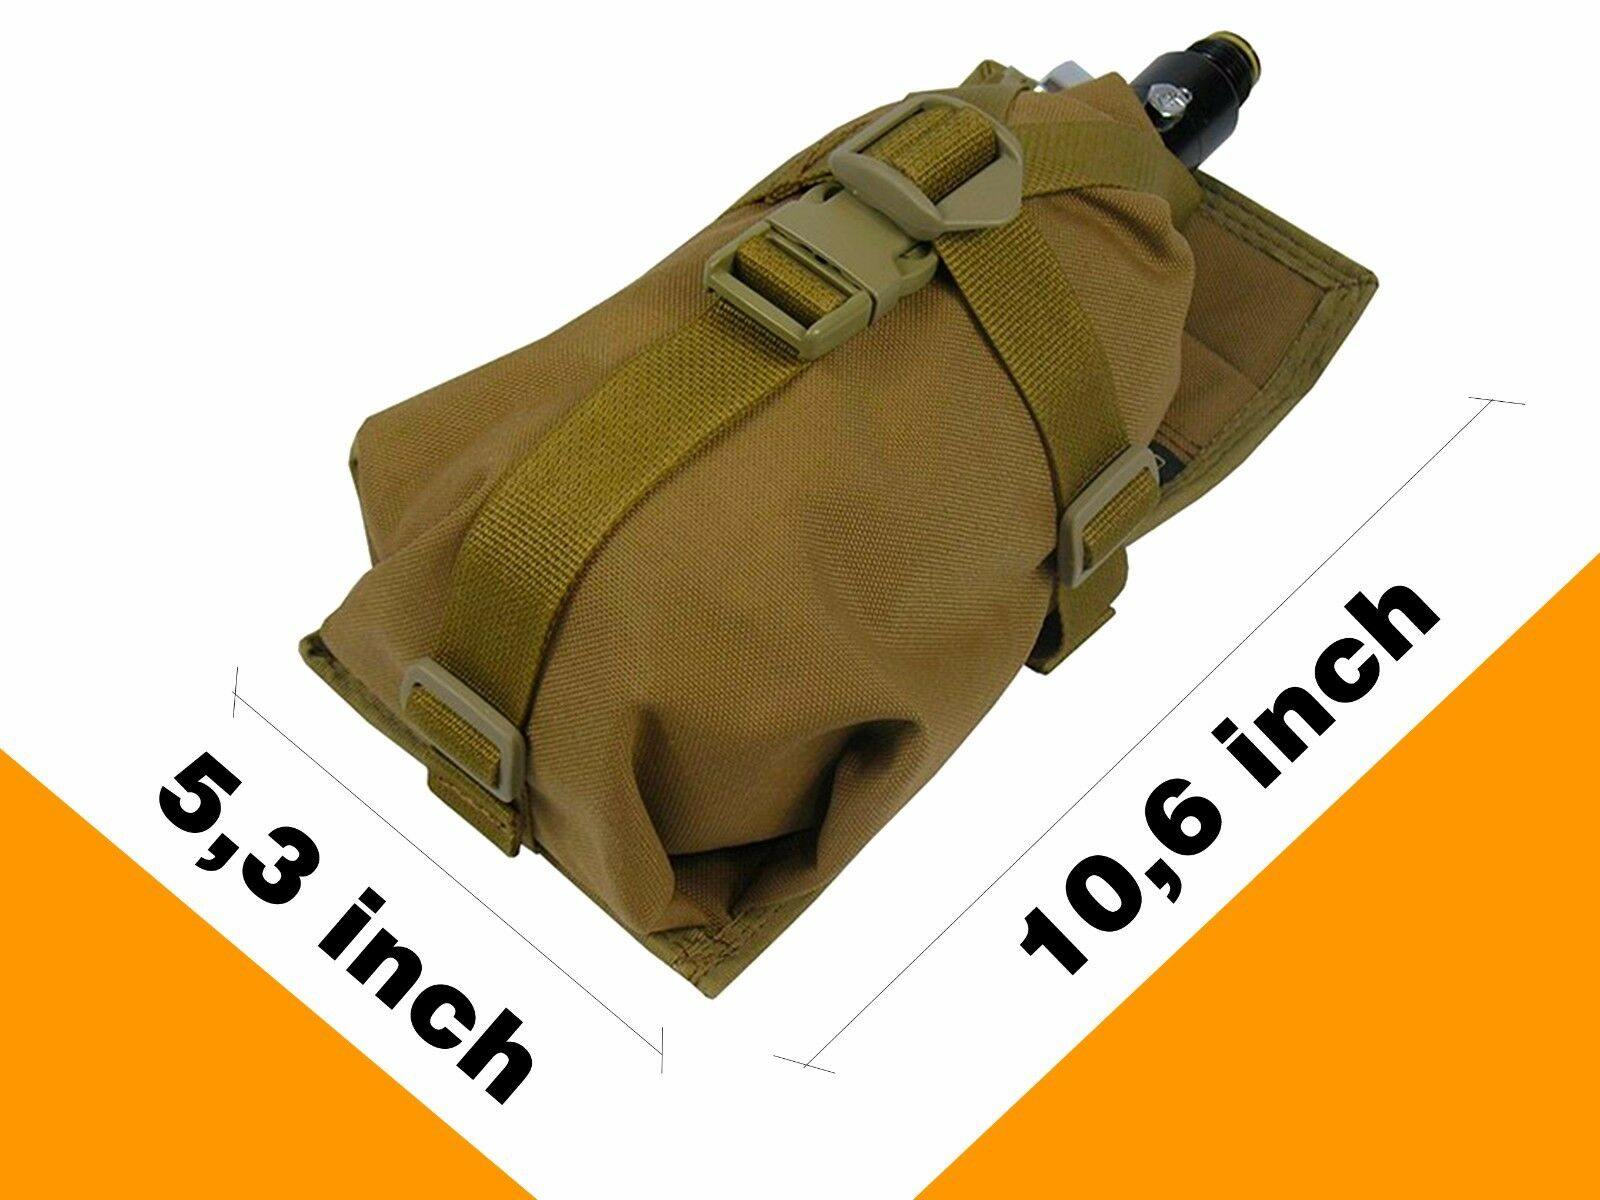 Pouch Case molle pals coyote brown Ninja Air Tank olive PAINTBALL bag waterproof